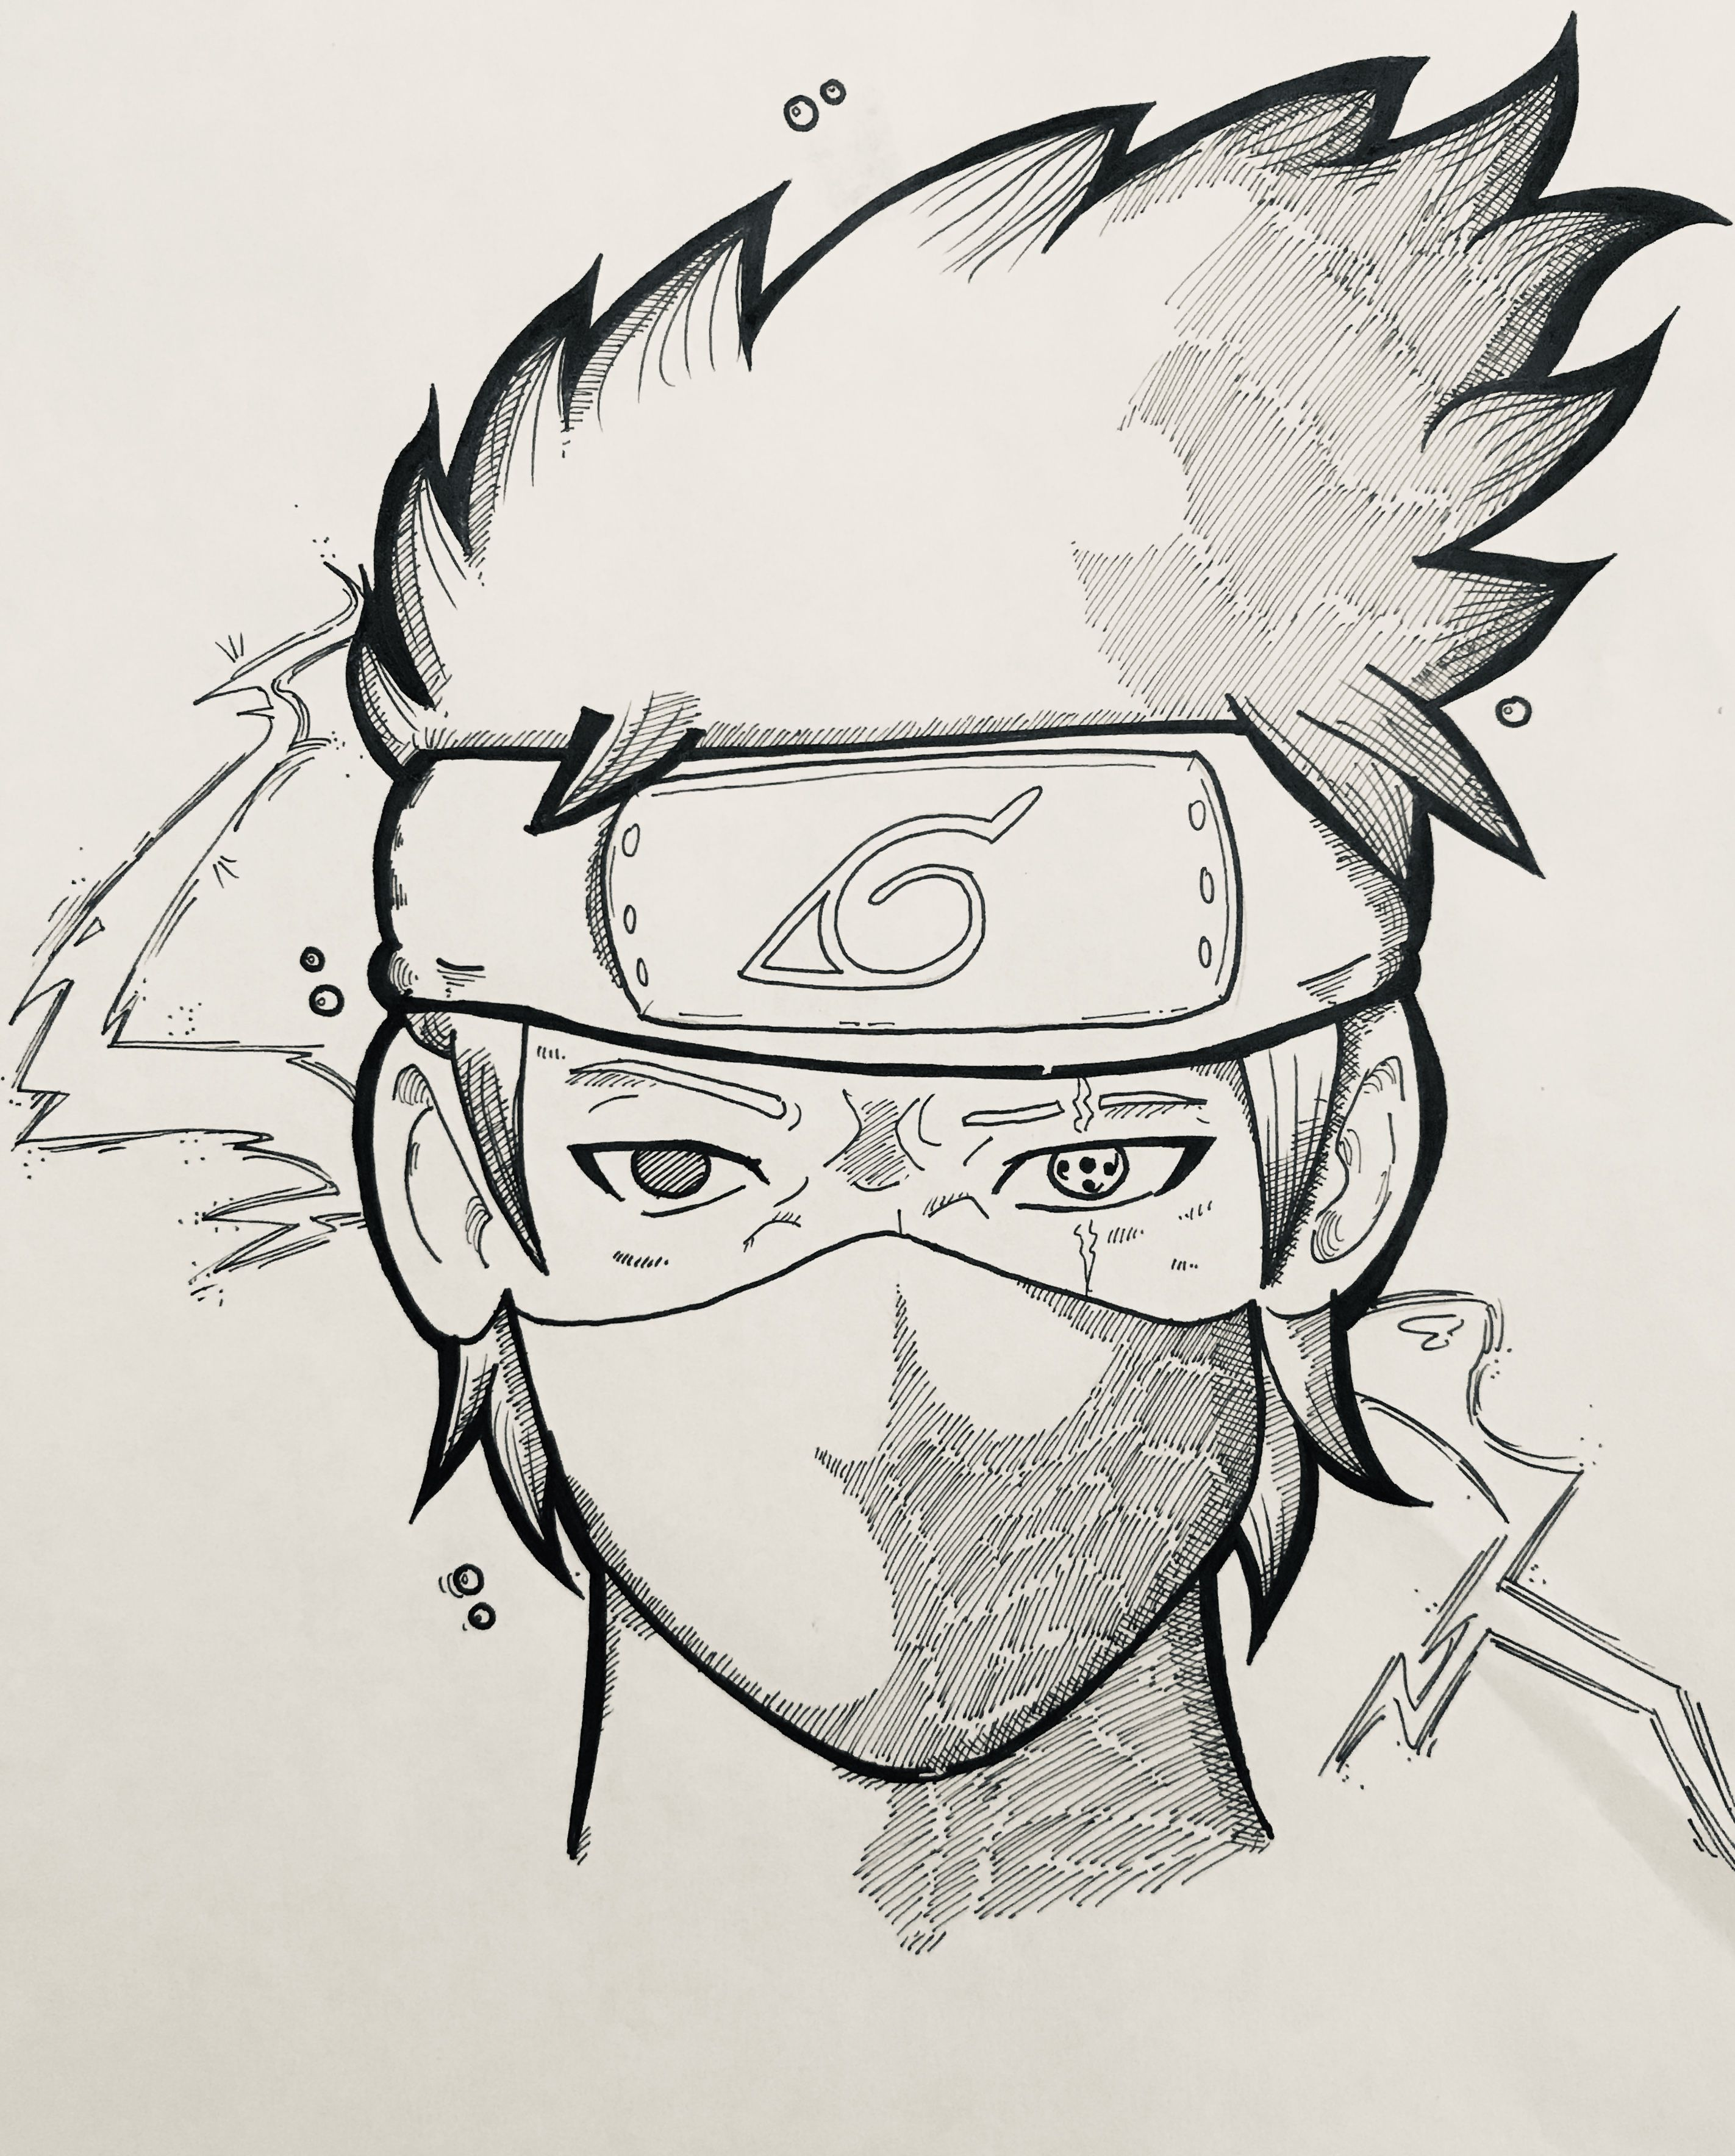 Ashley Celestin Kakashi Sketch Kakashi Drawing Kakashi Hatake